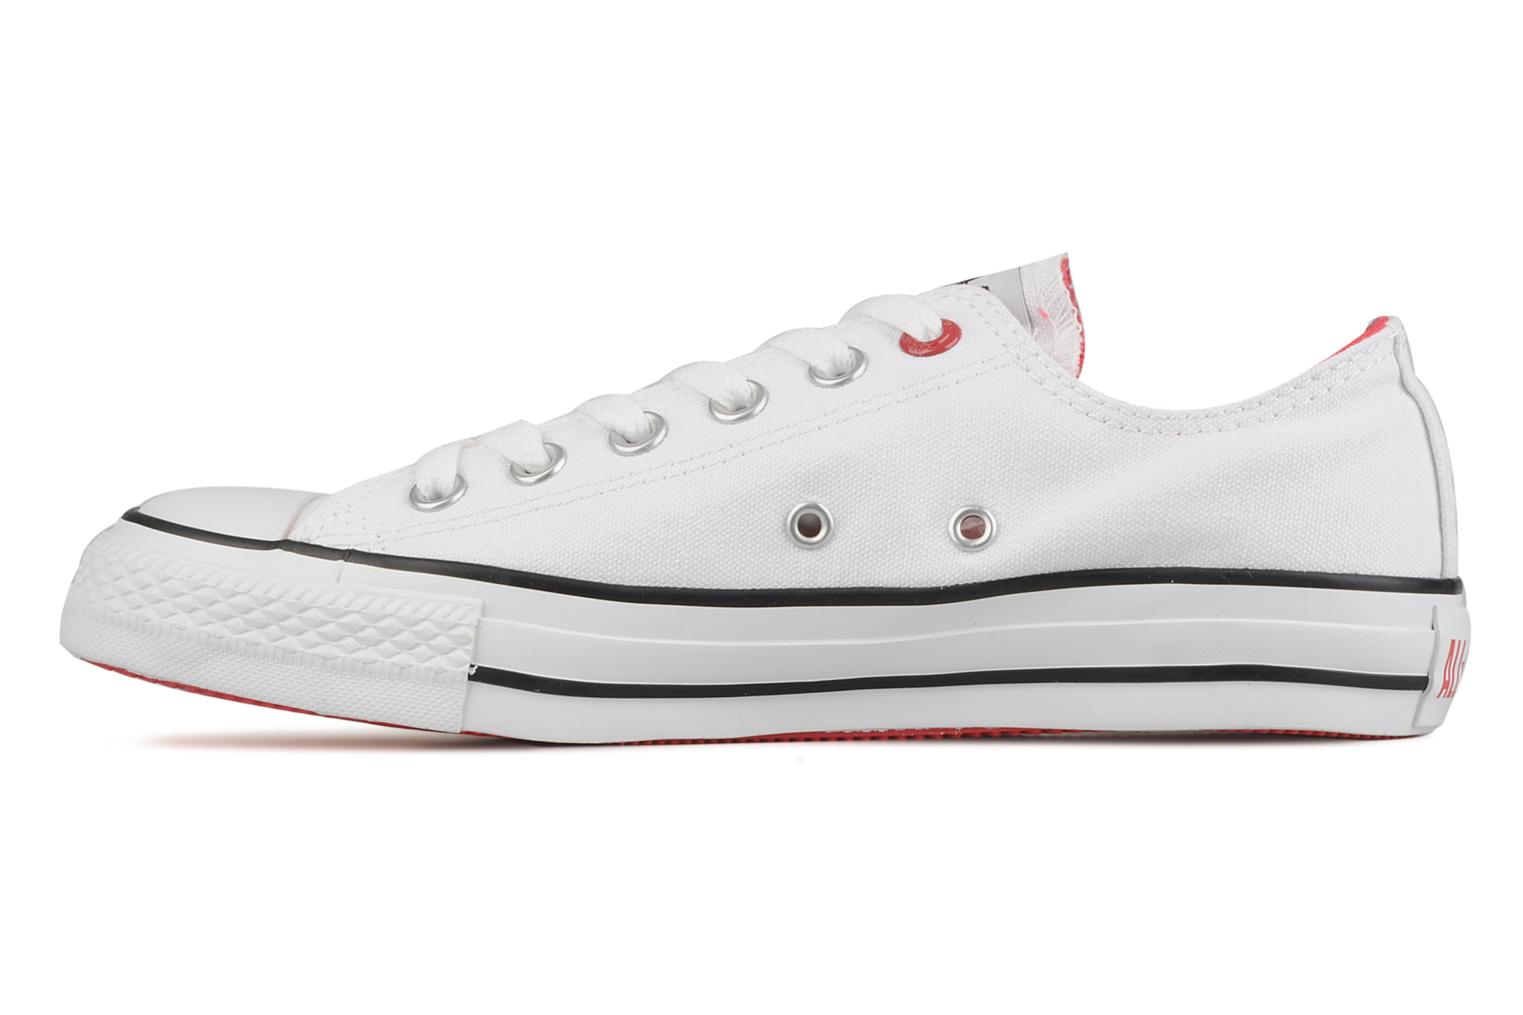 Trainers Converse Chuck taylor all star red i am … ox w White front view